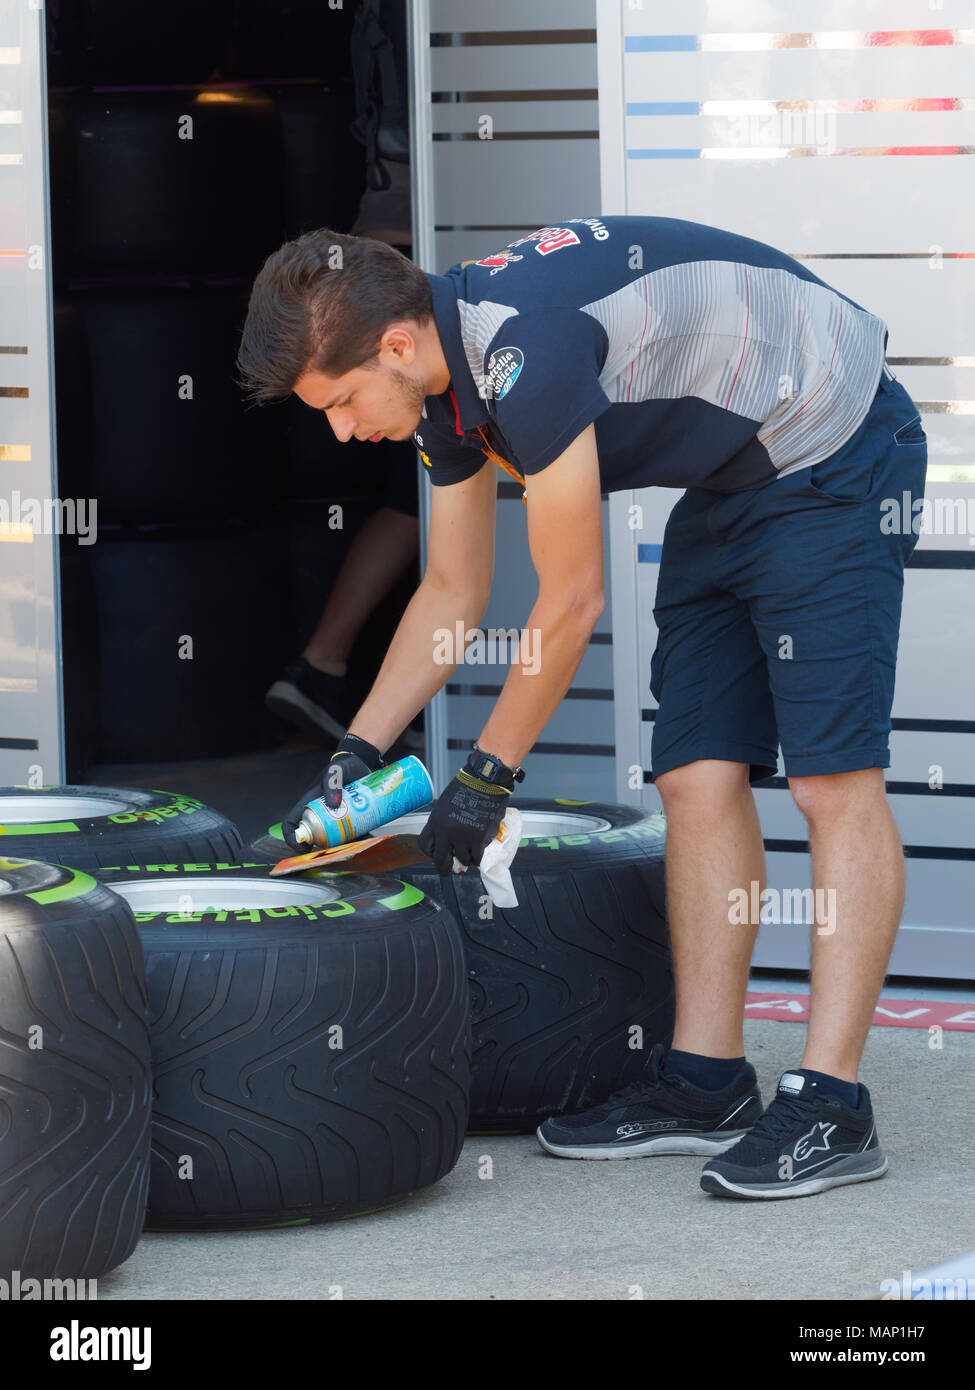 Montreal, Quebec.A mechanic for Scuderia Toro Rosso is marking tires to be used in the Canadian Grand Prix in Montreal,Quebec - Stock Image